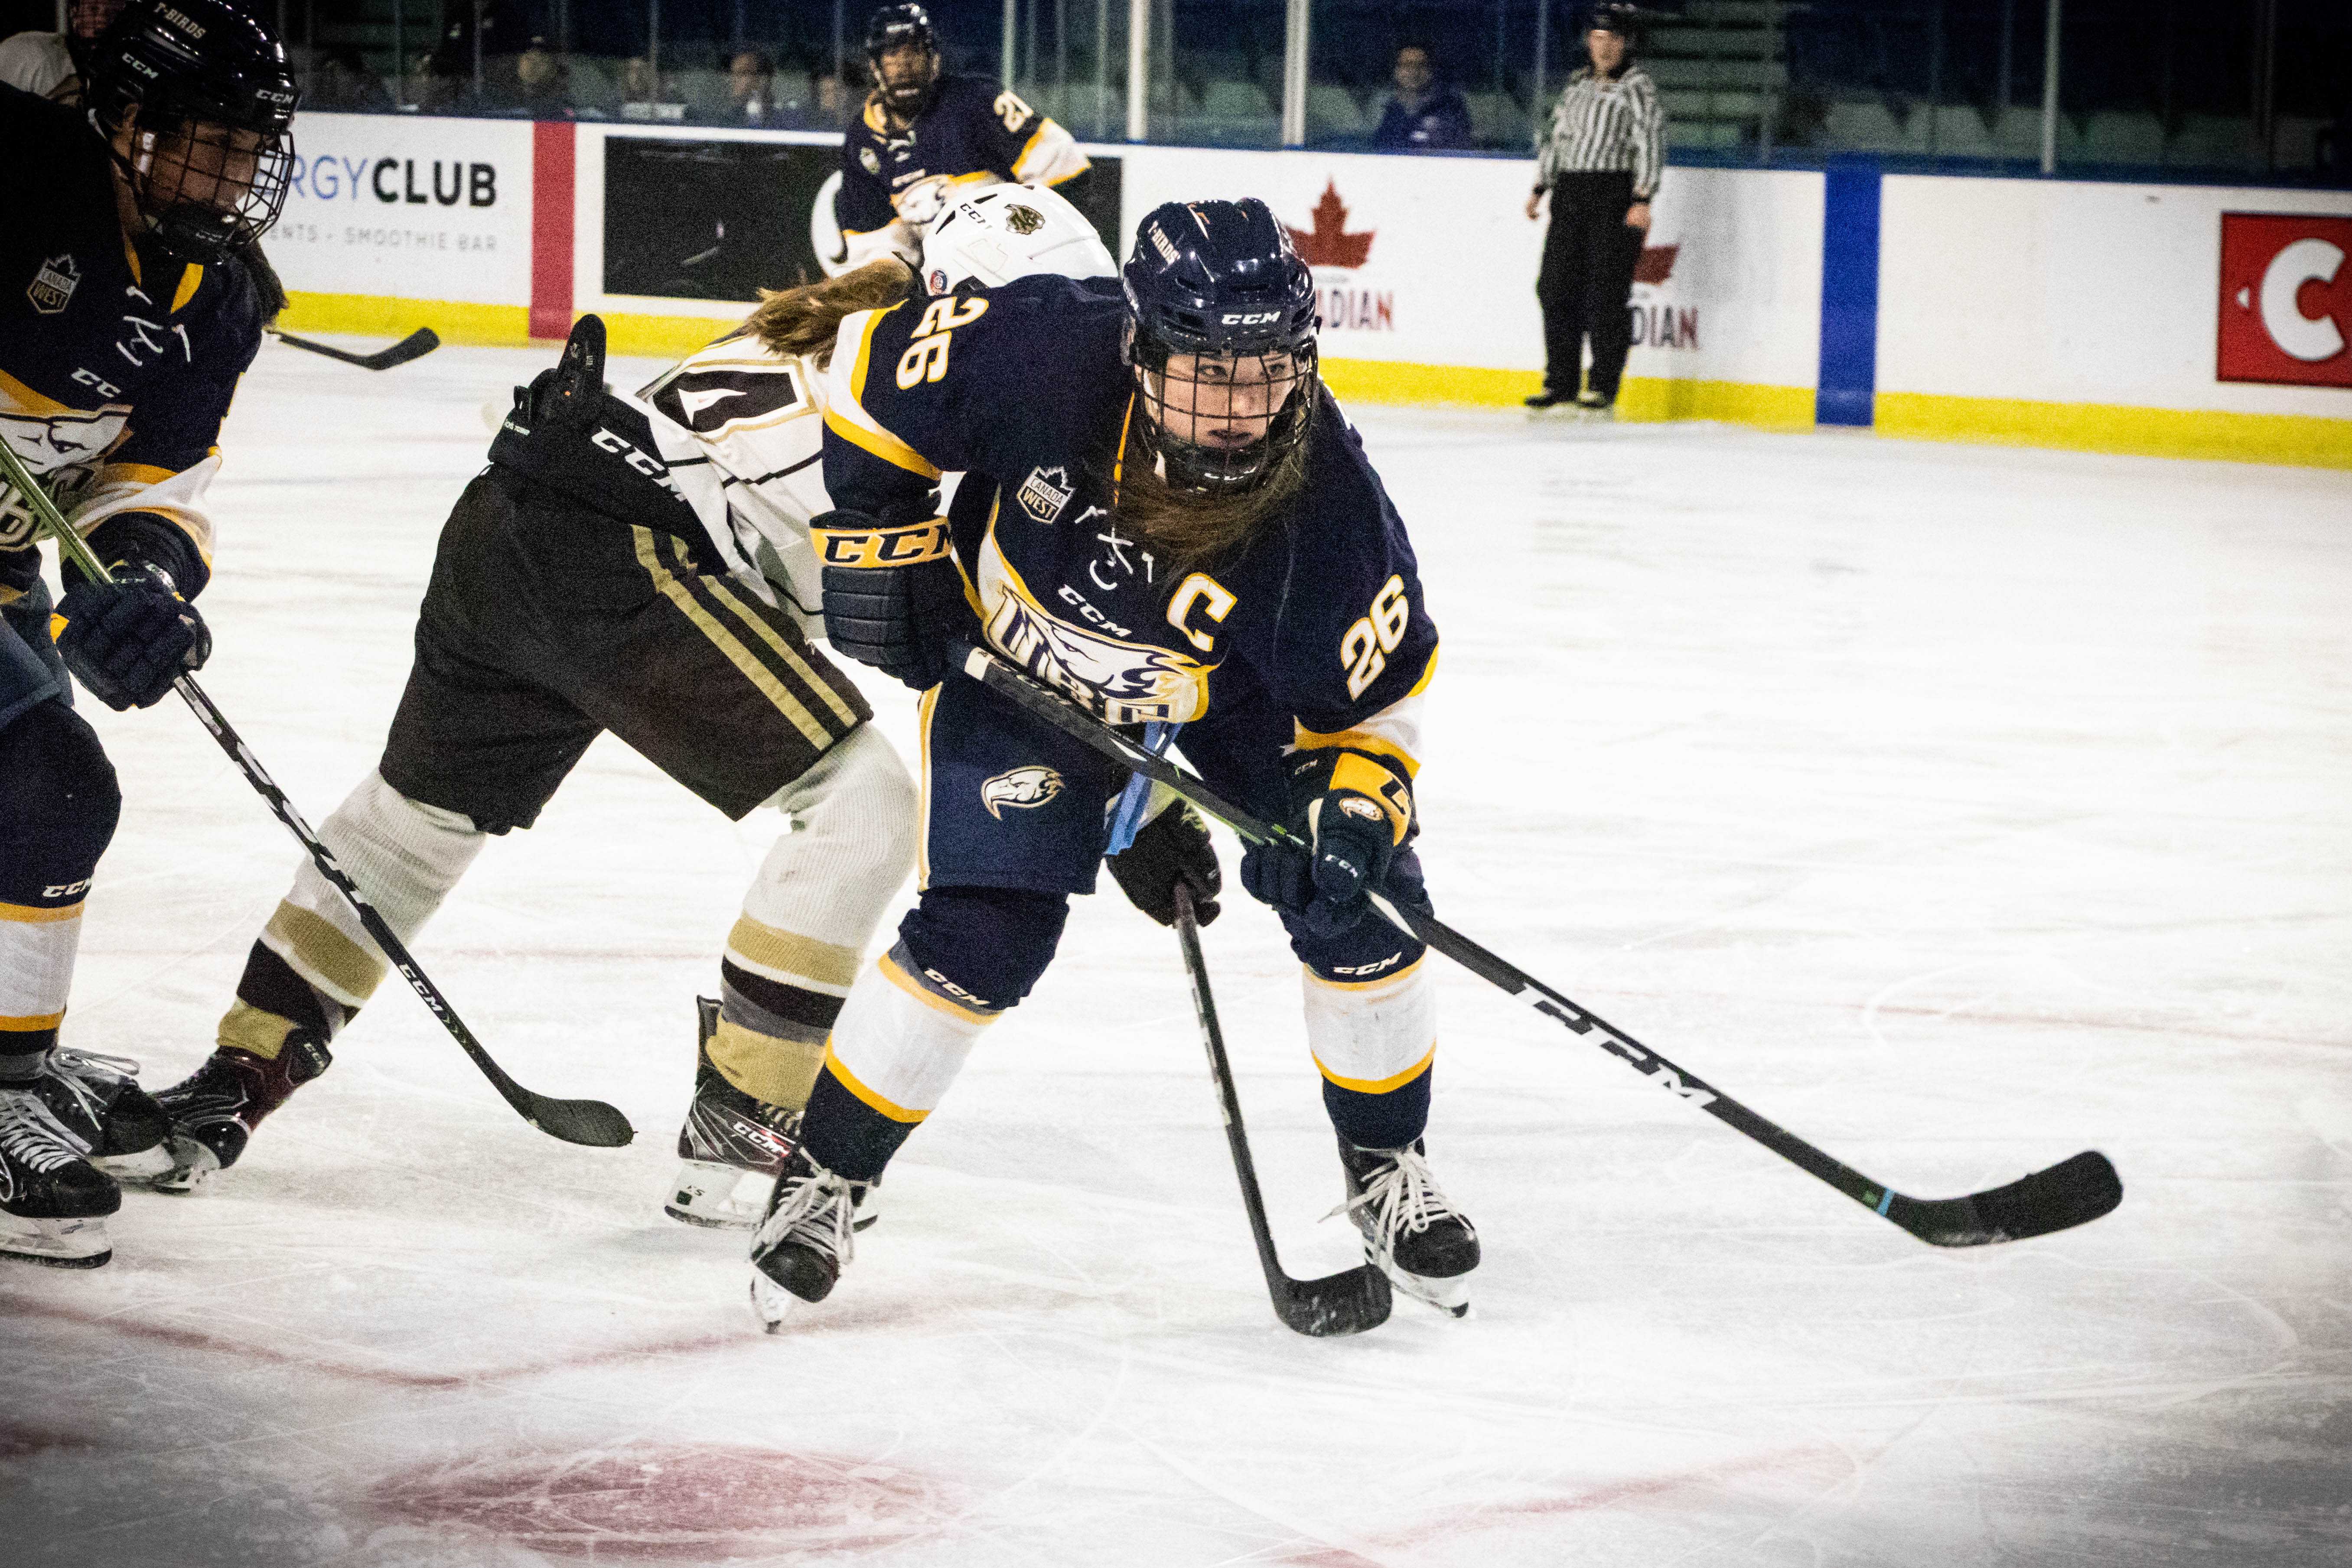 Women's hockey managed to split their weekend against Lethbridge and earn a Canada West playoff spot.